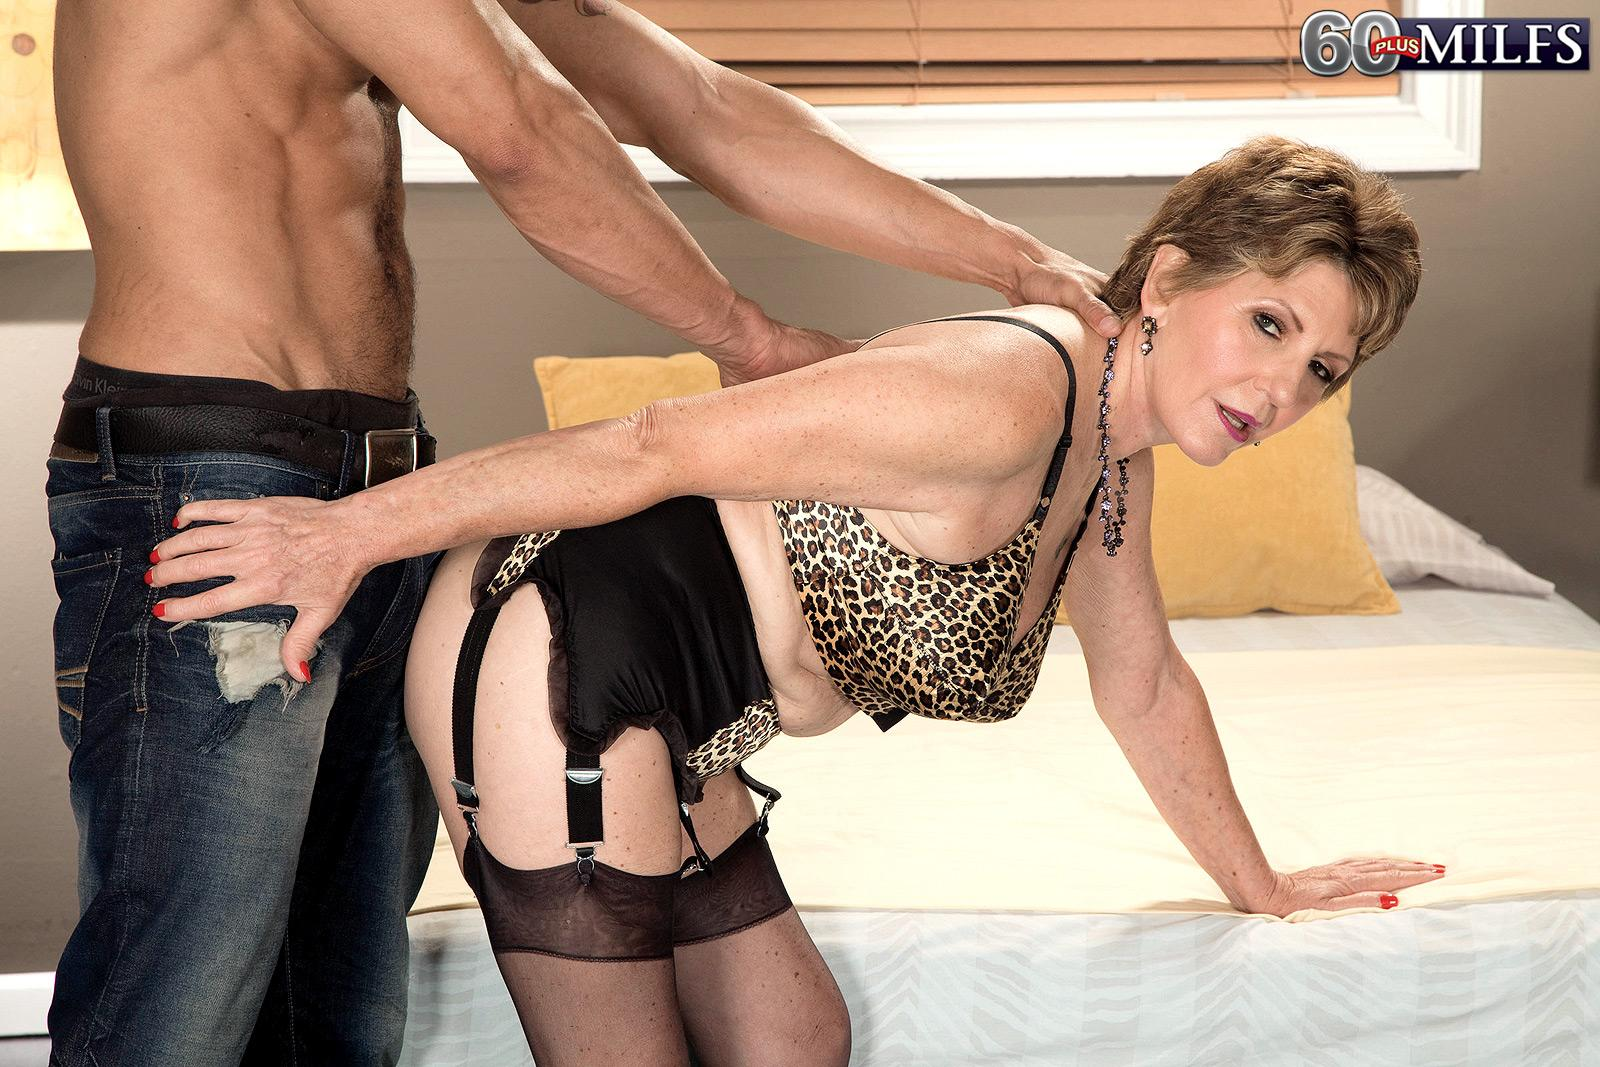 stocking outfitted granny bea cummins delivering big ebony cock hand